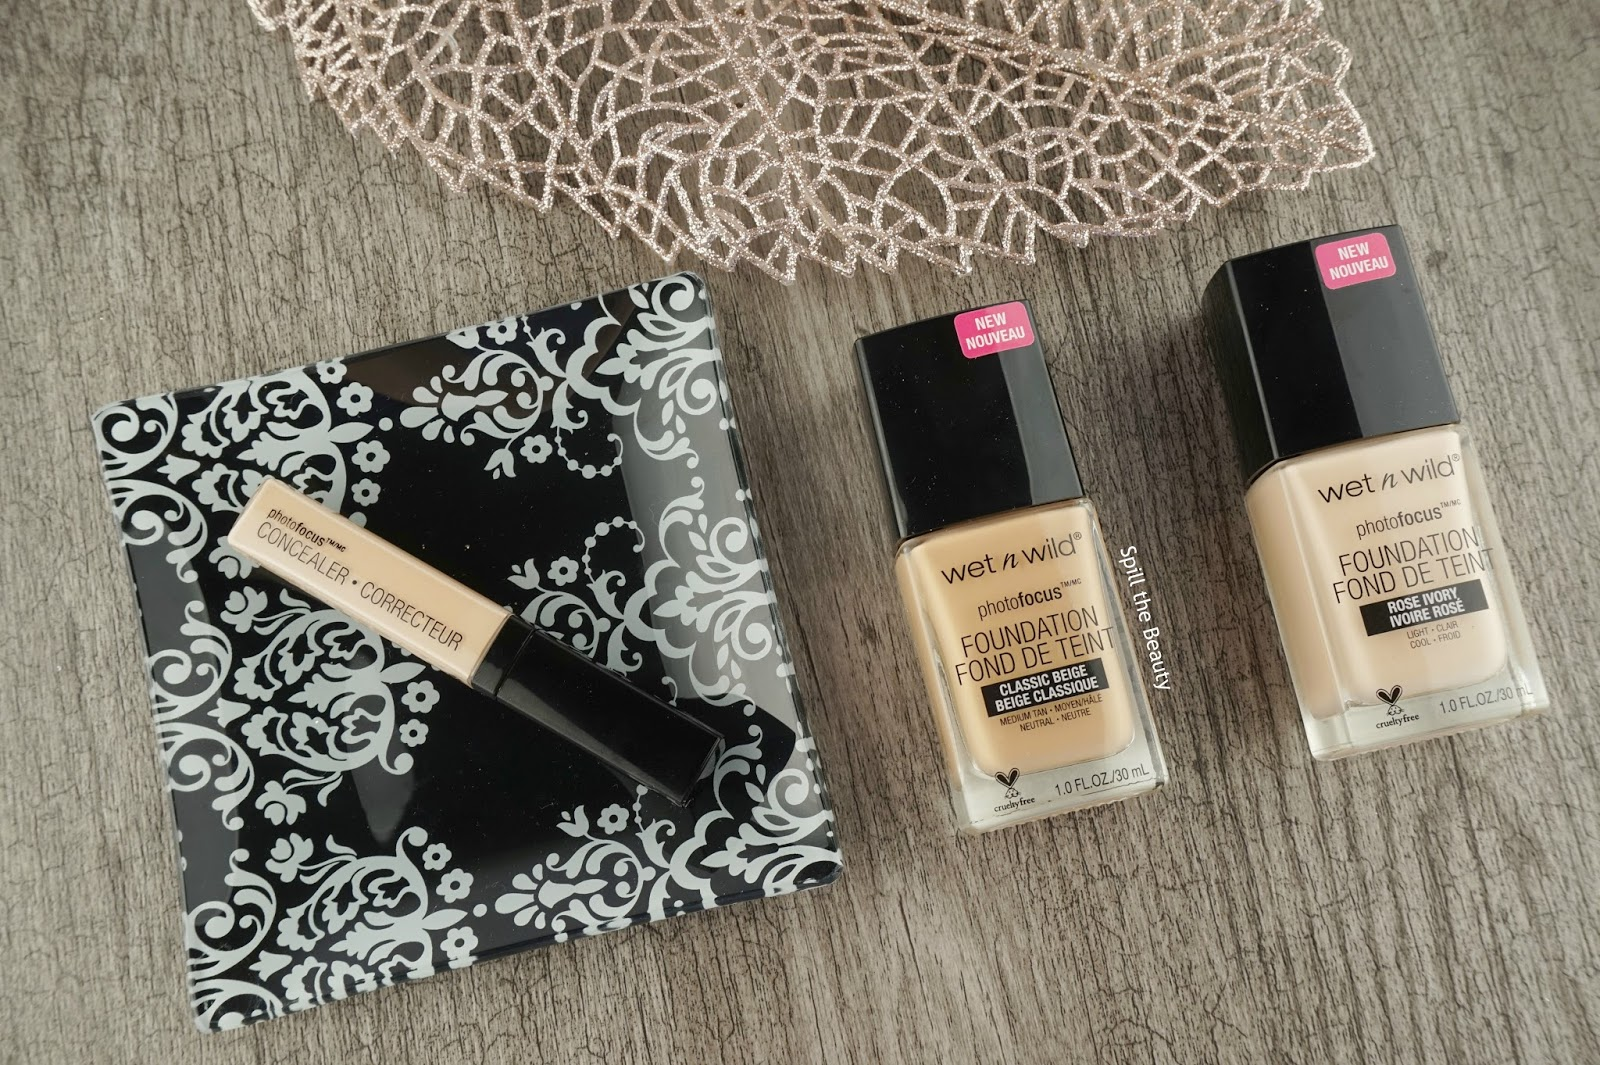 wet n wild photofocus foundation rose ivory classic beige photofocus concealer light ivory review swatches before and after